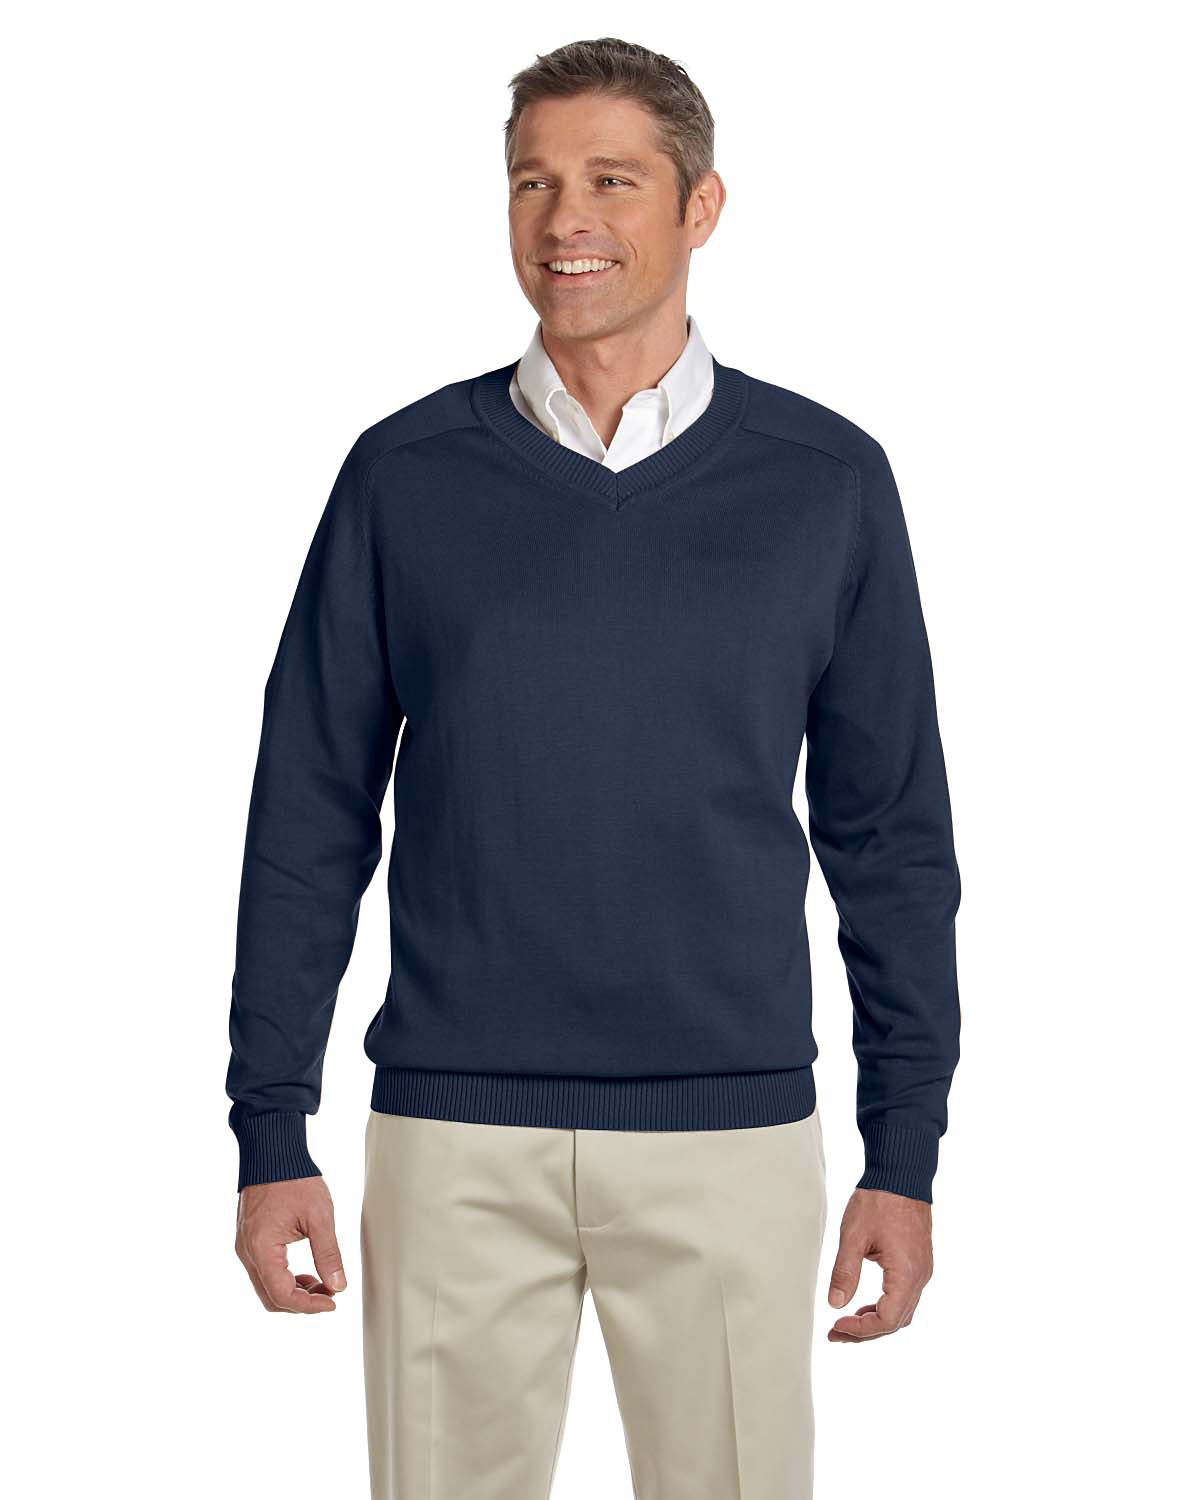 Devon & Jones - D475 Men's V-Neck Sweater